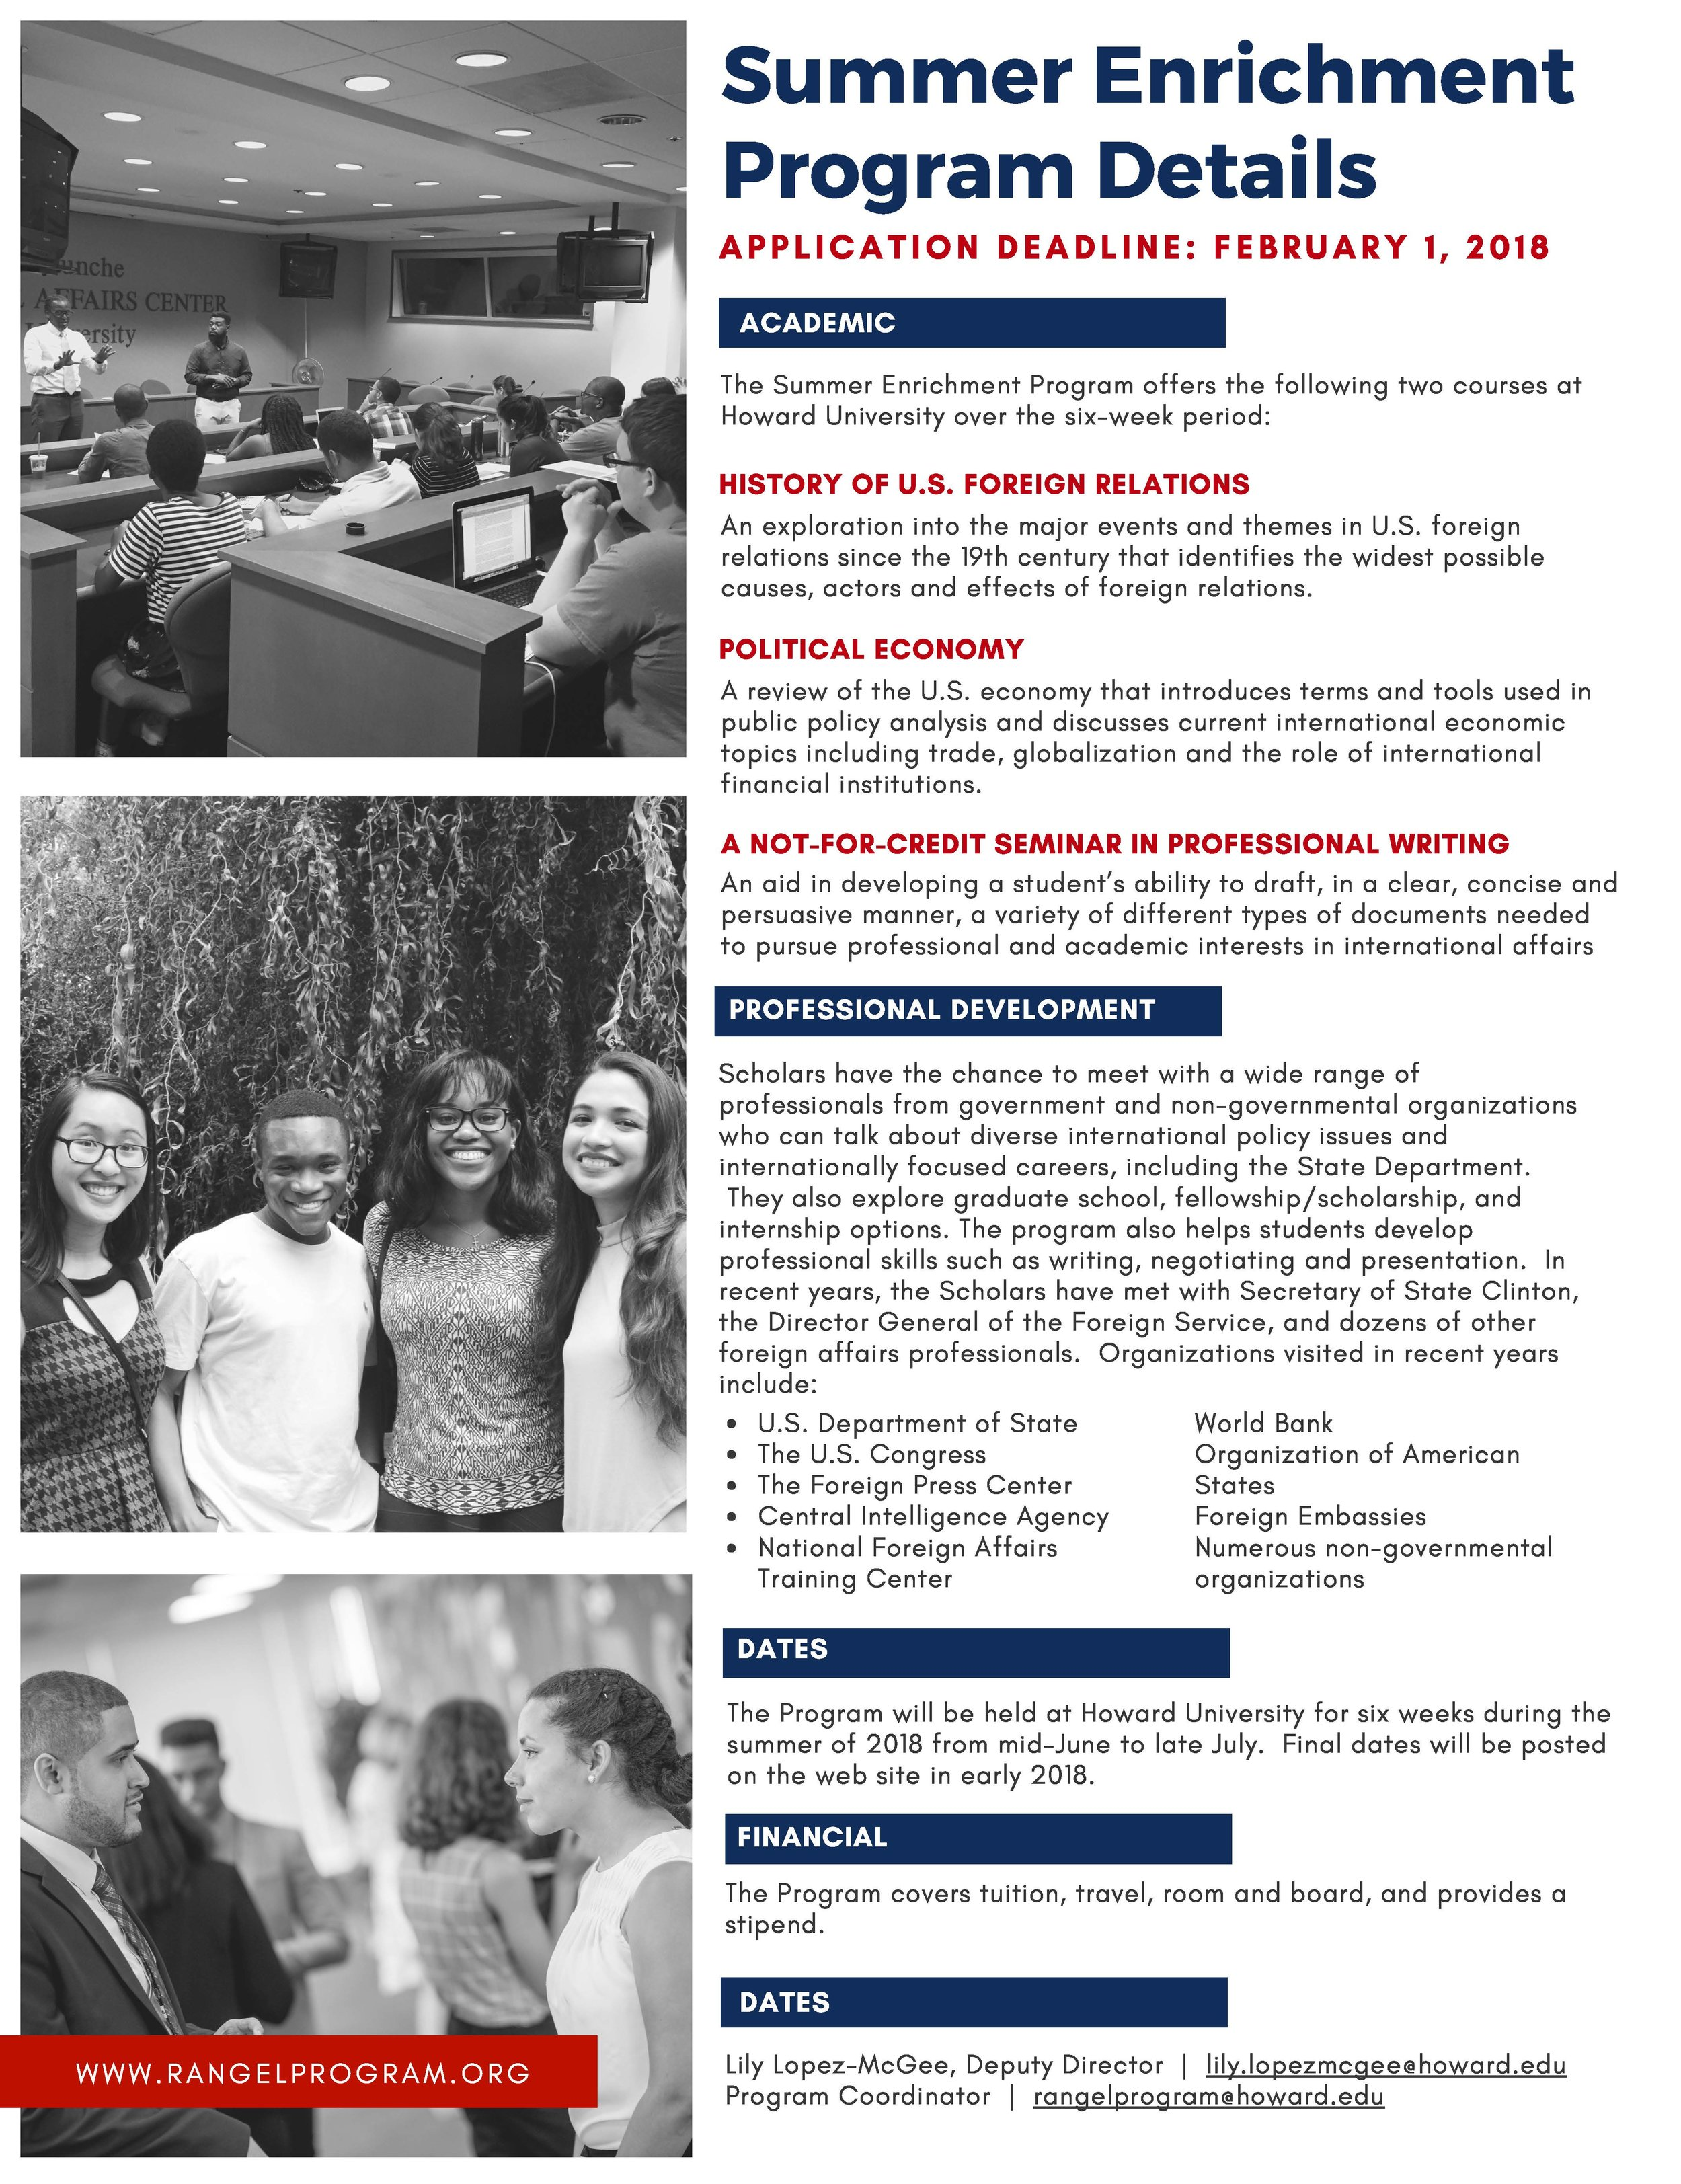 Rangel Int'l Affairs Summer Enrichment - Program Description_Page_2.jpg